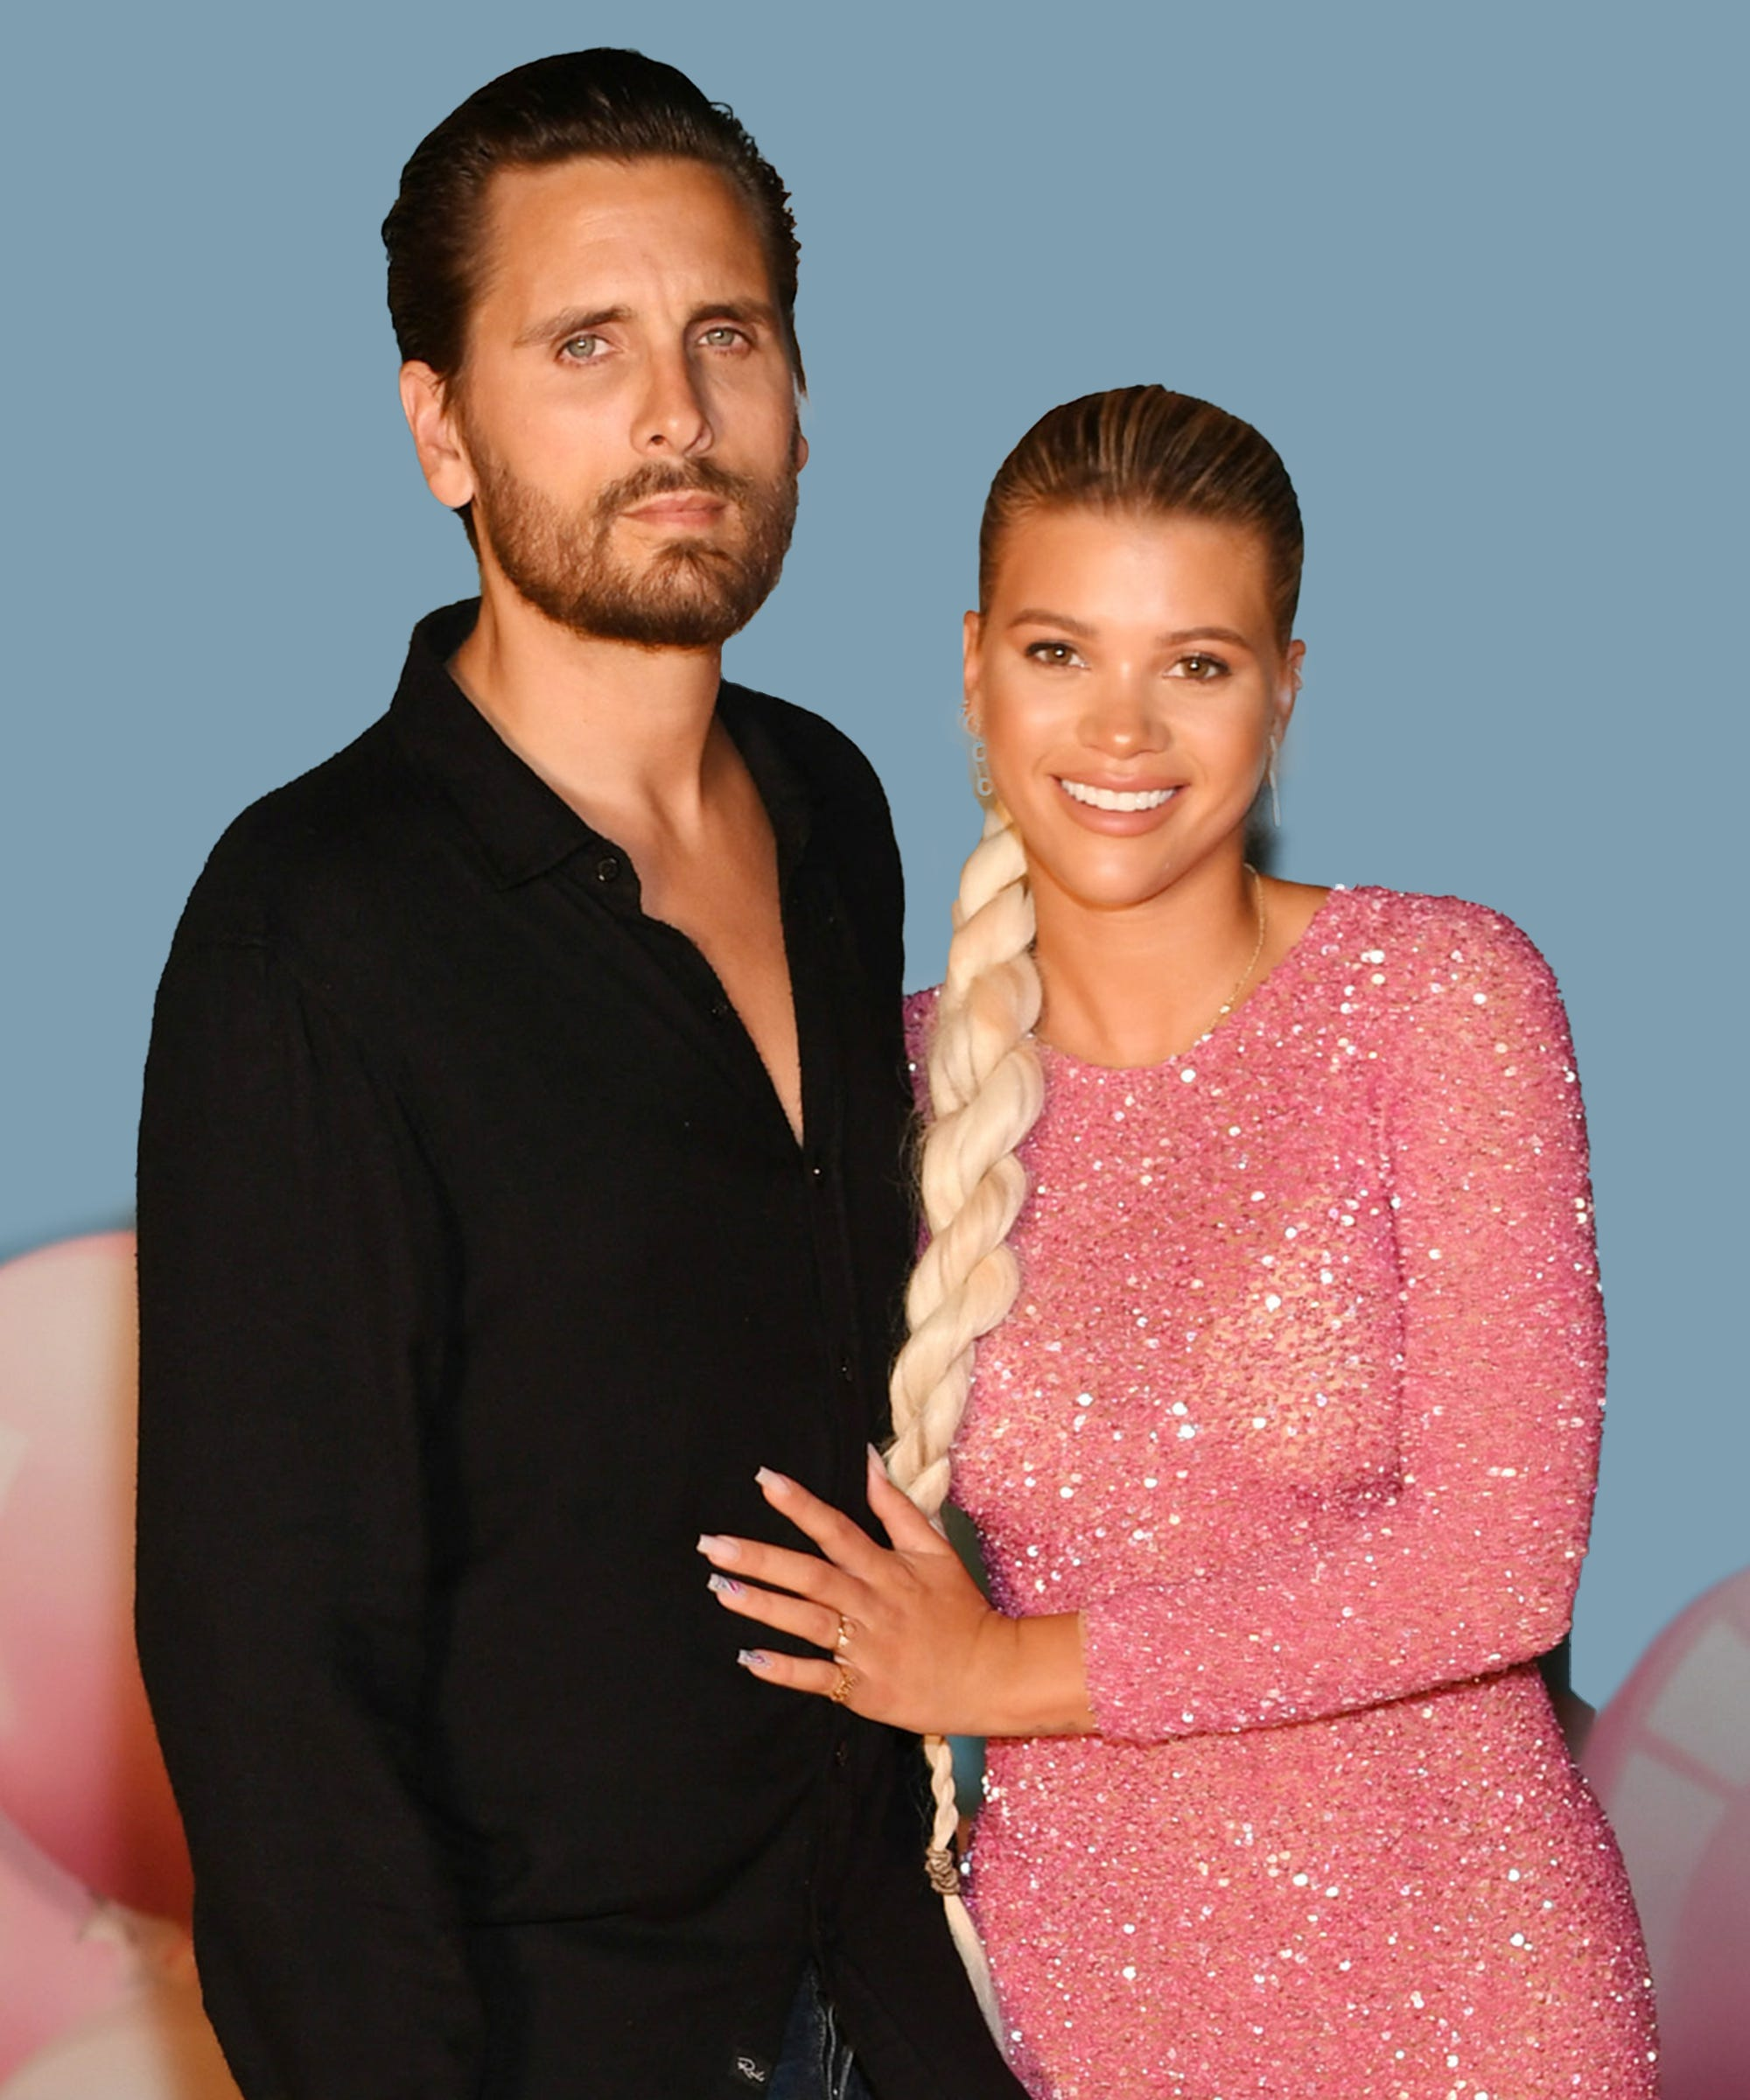 Sofia Richie An Expensive Set Of Wheels For Her 21st Birthday From Scott Disick